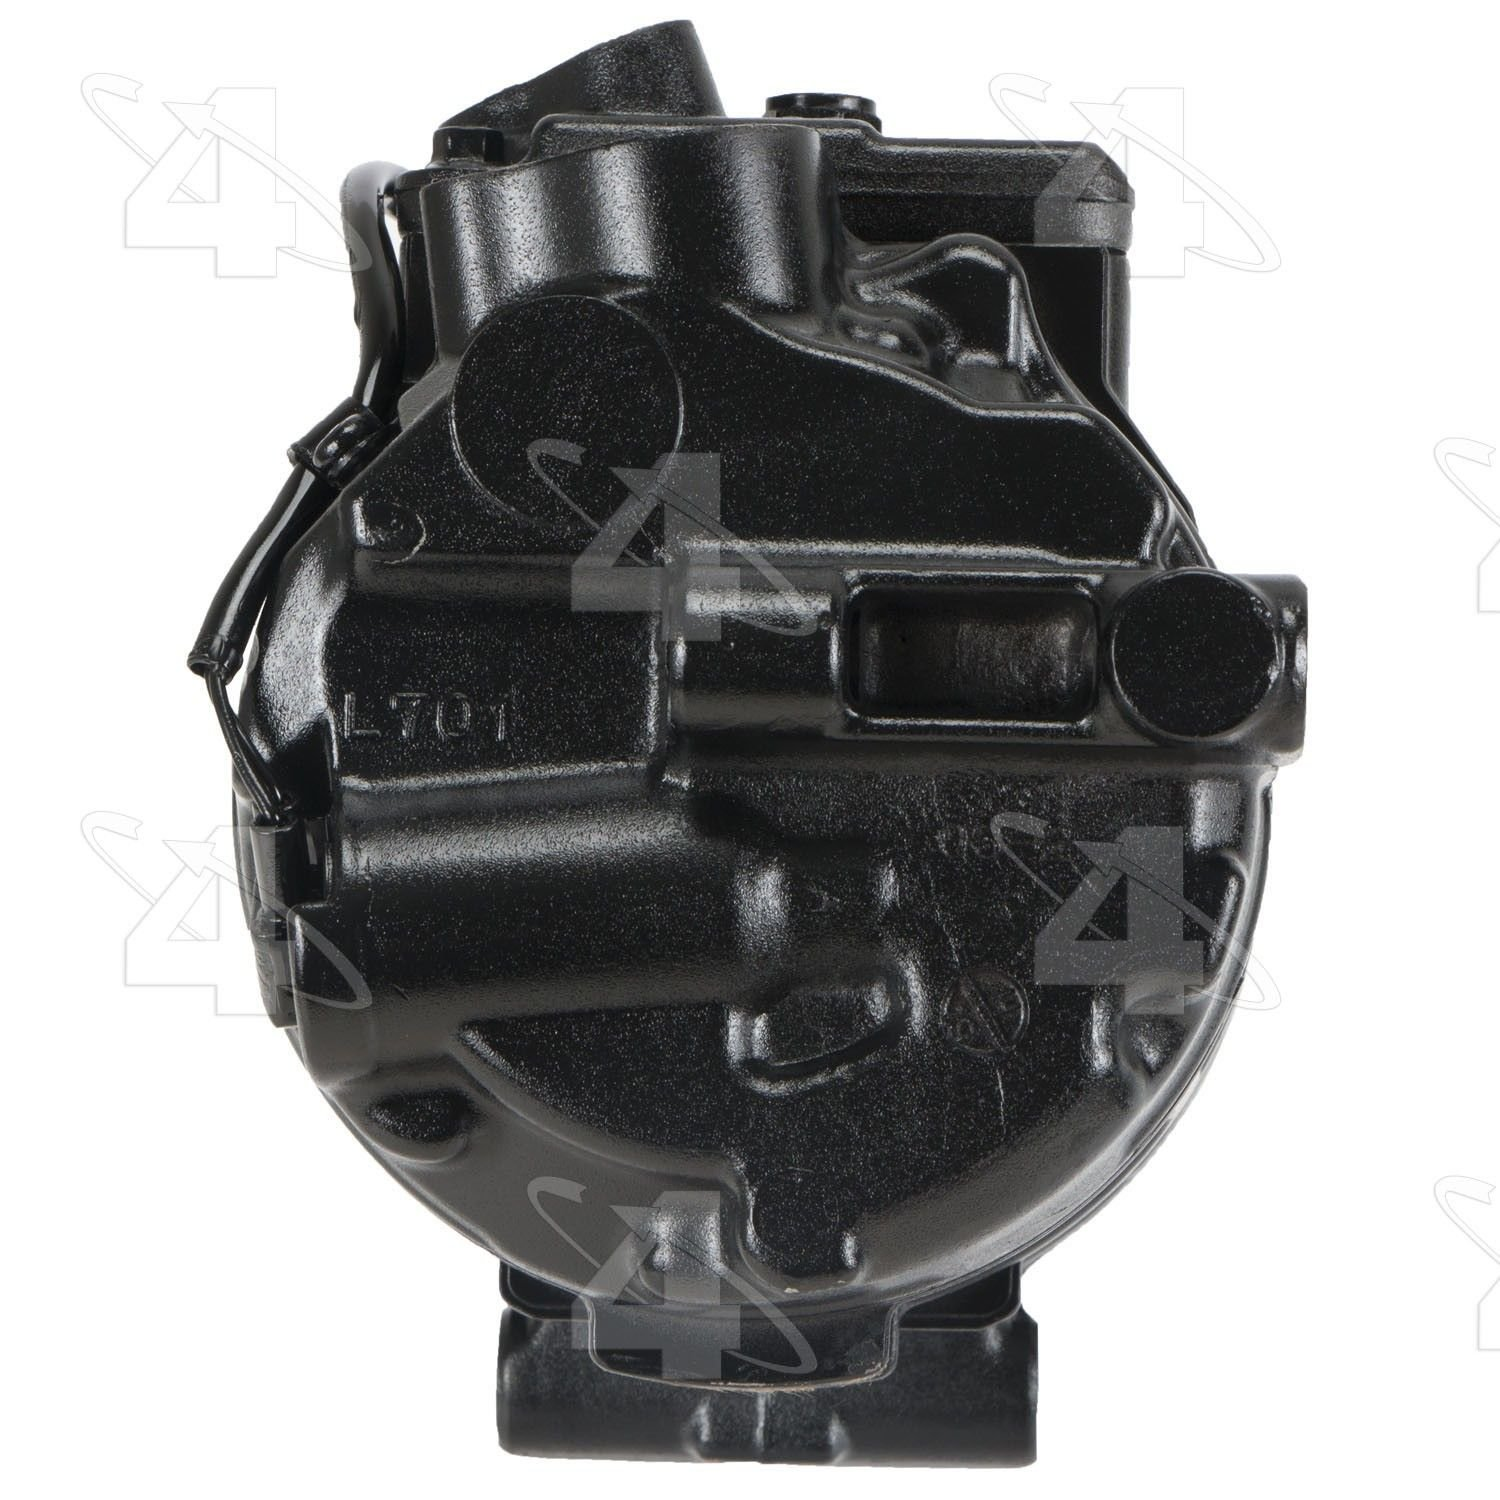 Mercedes Benz Ml350 A C Compressor Replacement Four Seasons Global 2005 Parts 97356 With 7seu17c Reman Clutch 6 Groove Pulley 4 Diameter May